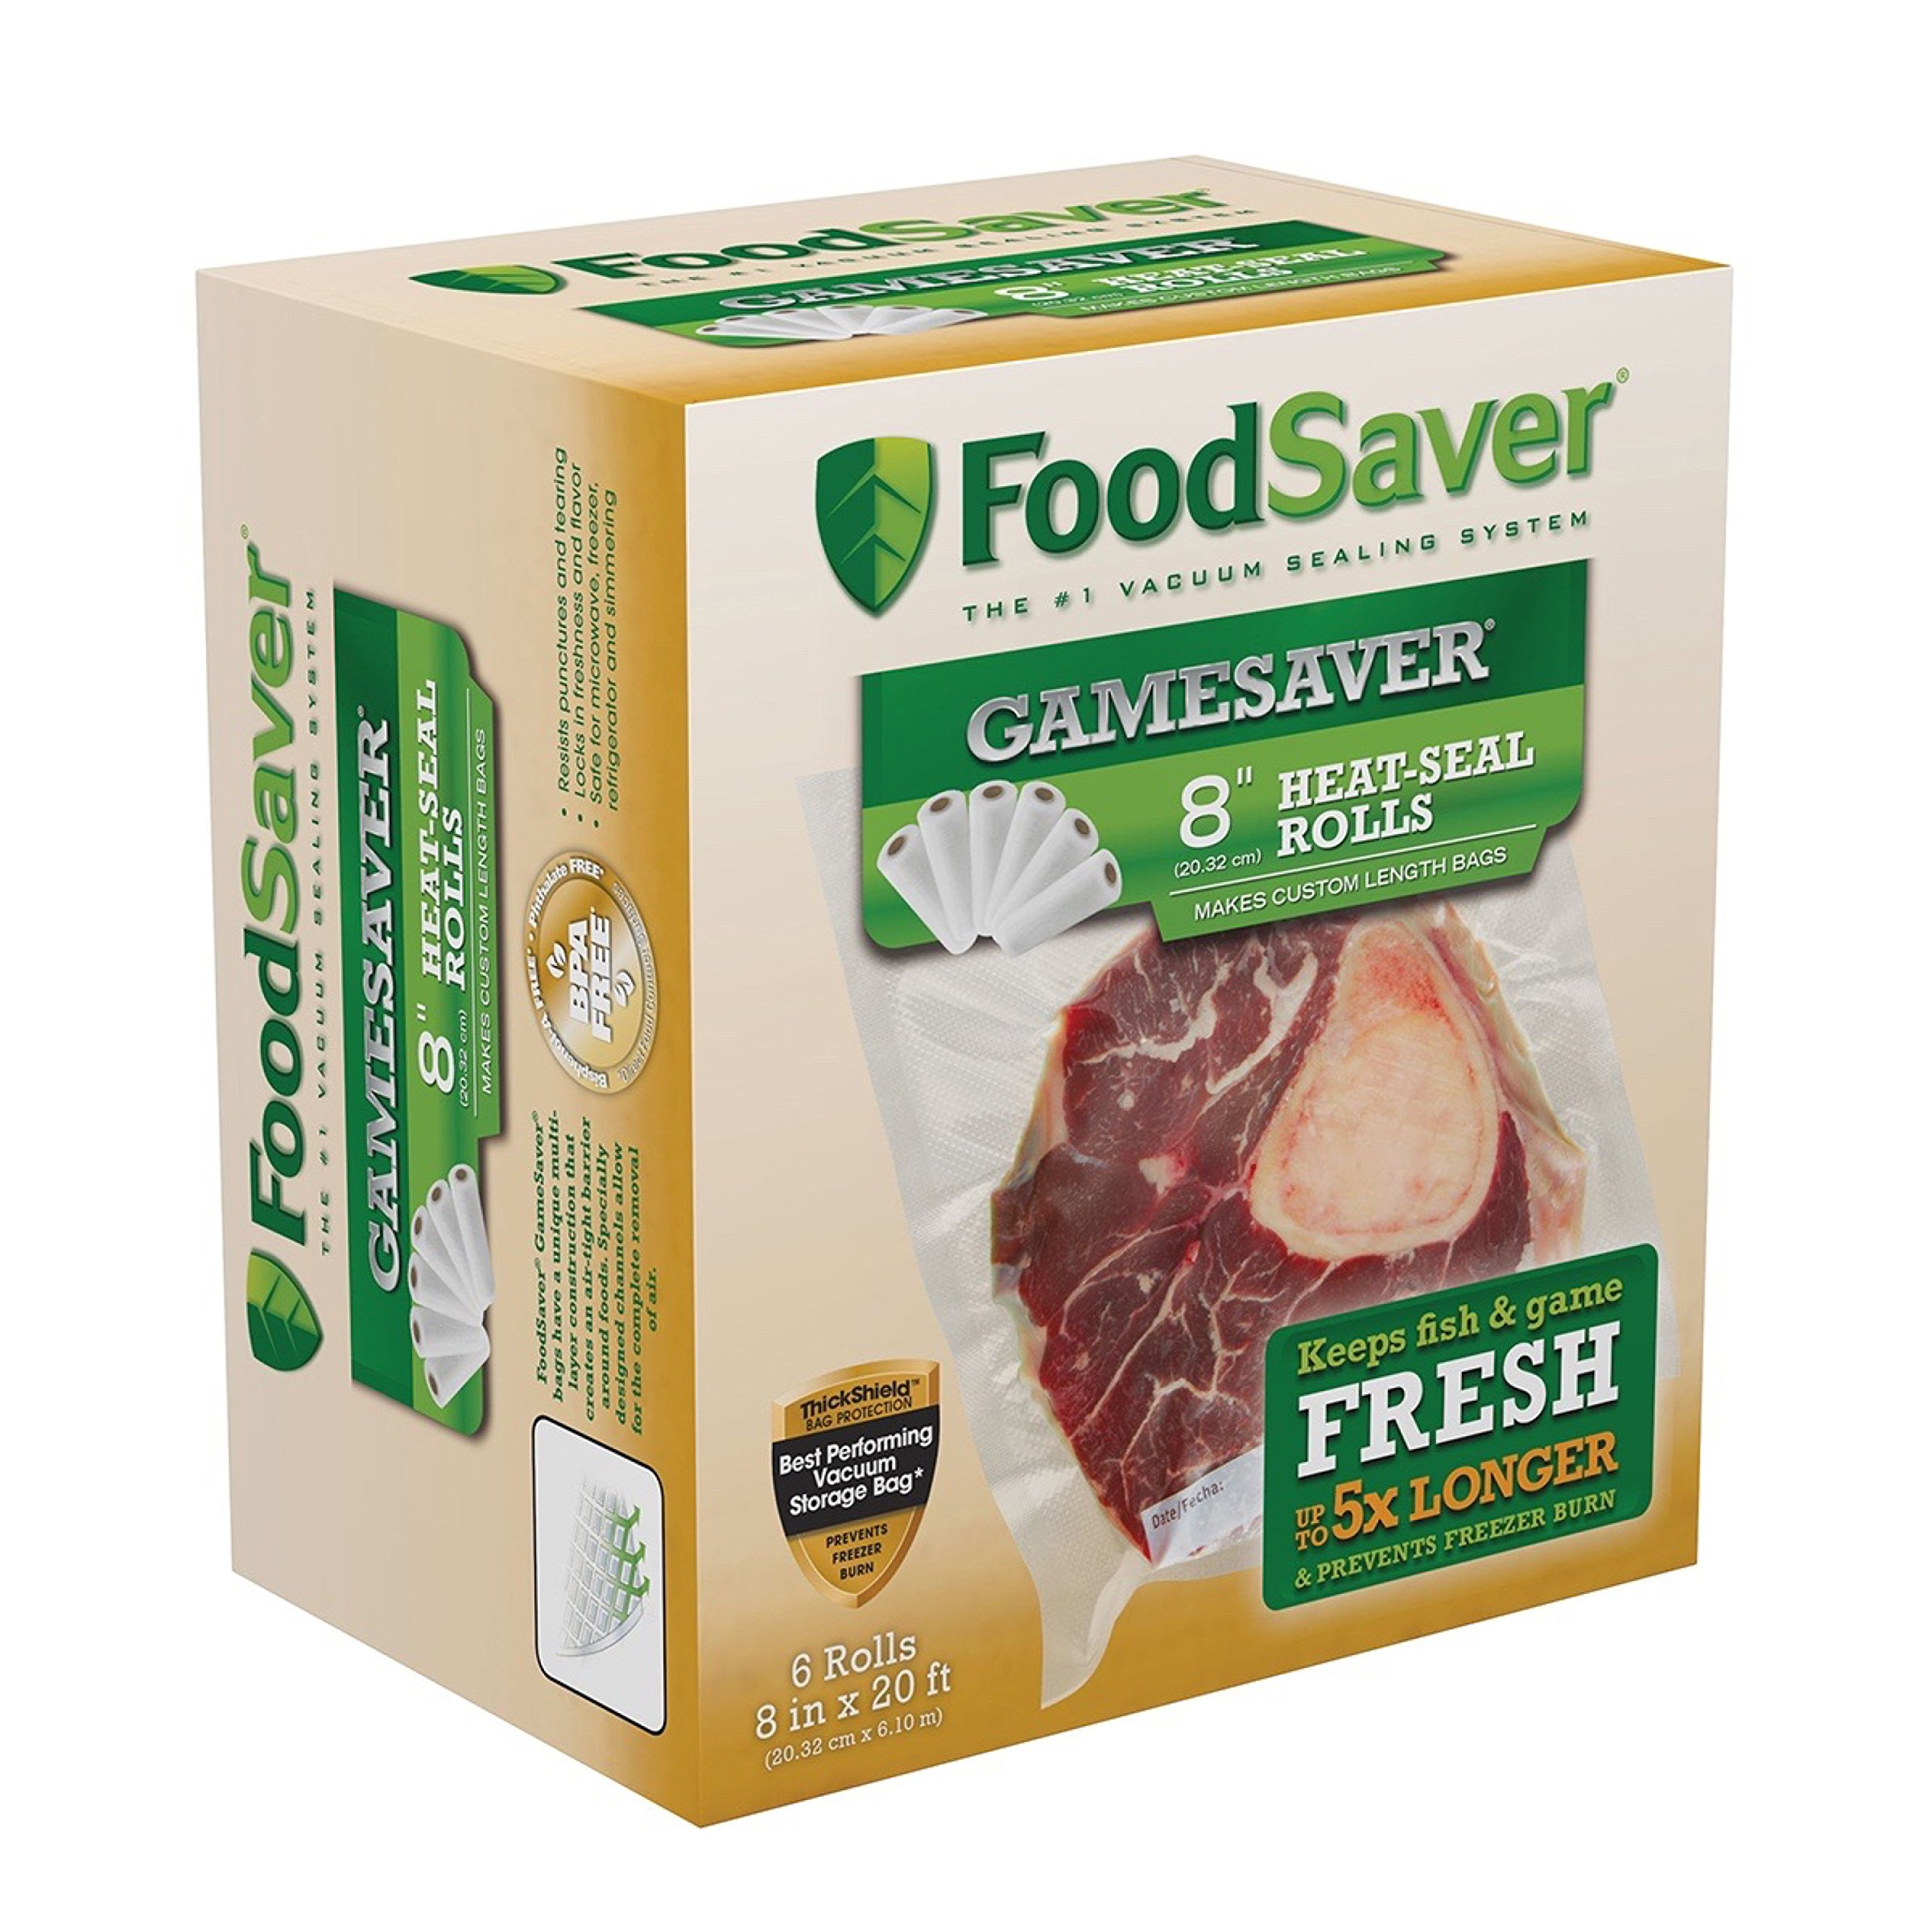 FoodSaver GameSaver 8'' x 20' Vacuum Seal Long Roll with BPA-Free Multilayer Construction, 6 Pack by FoodSaver